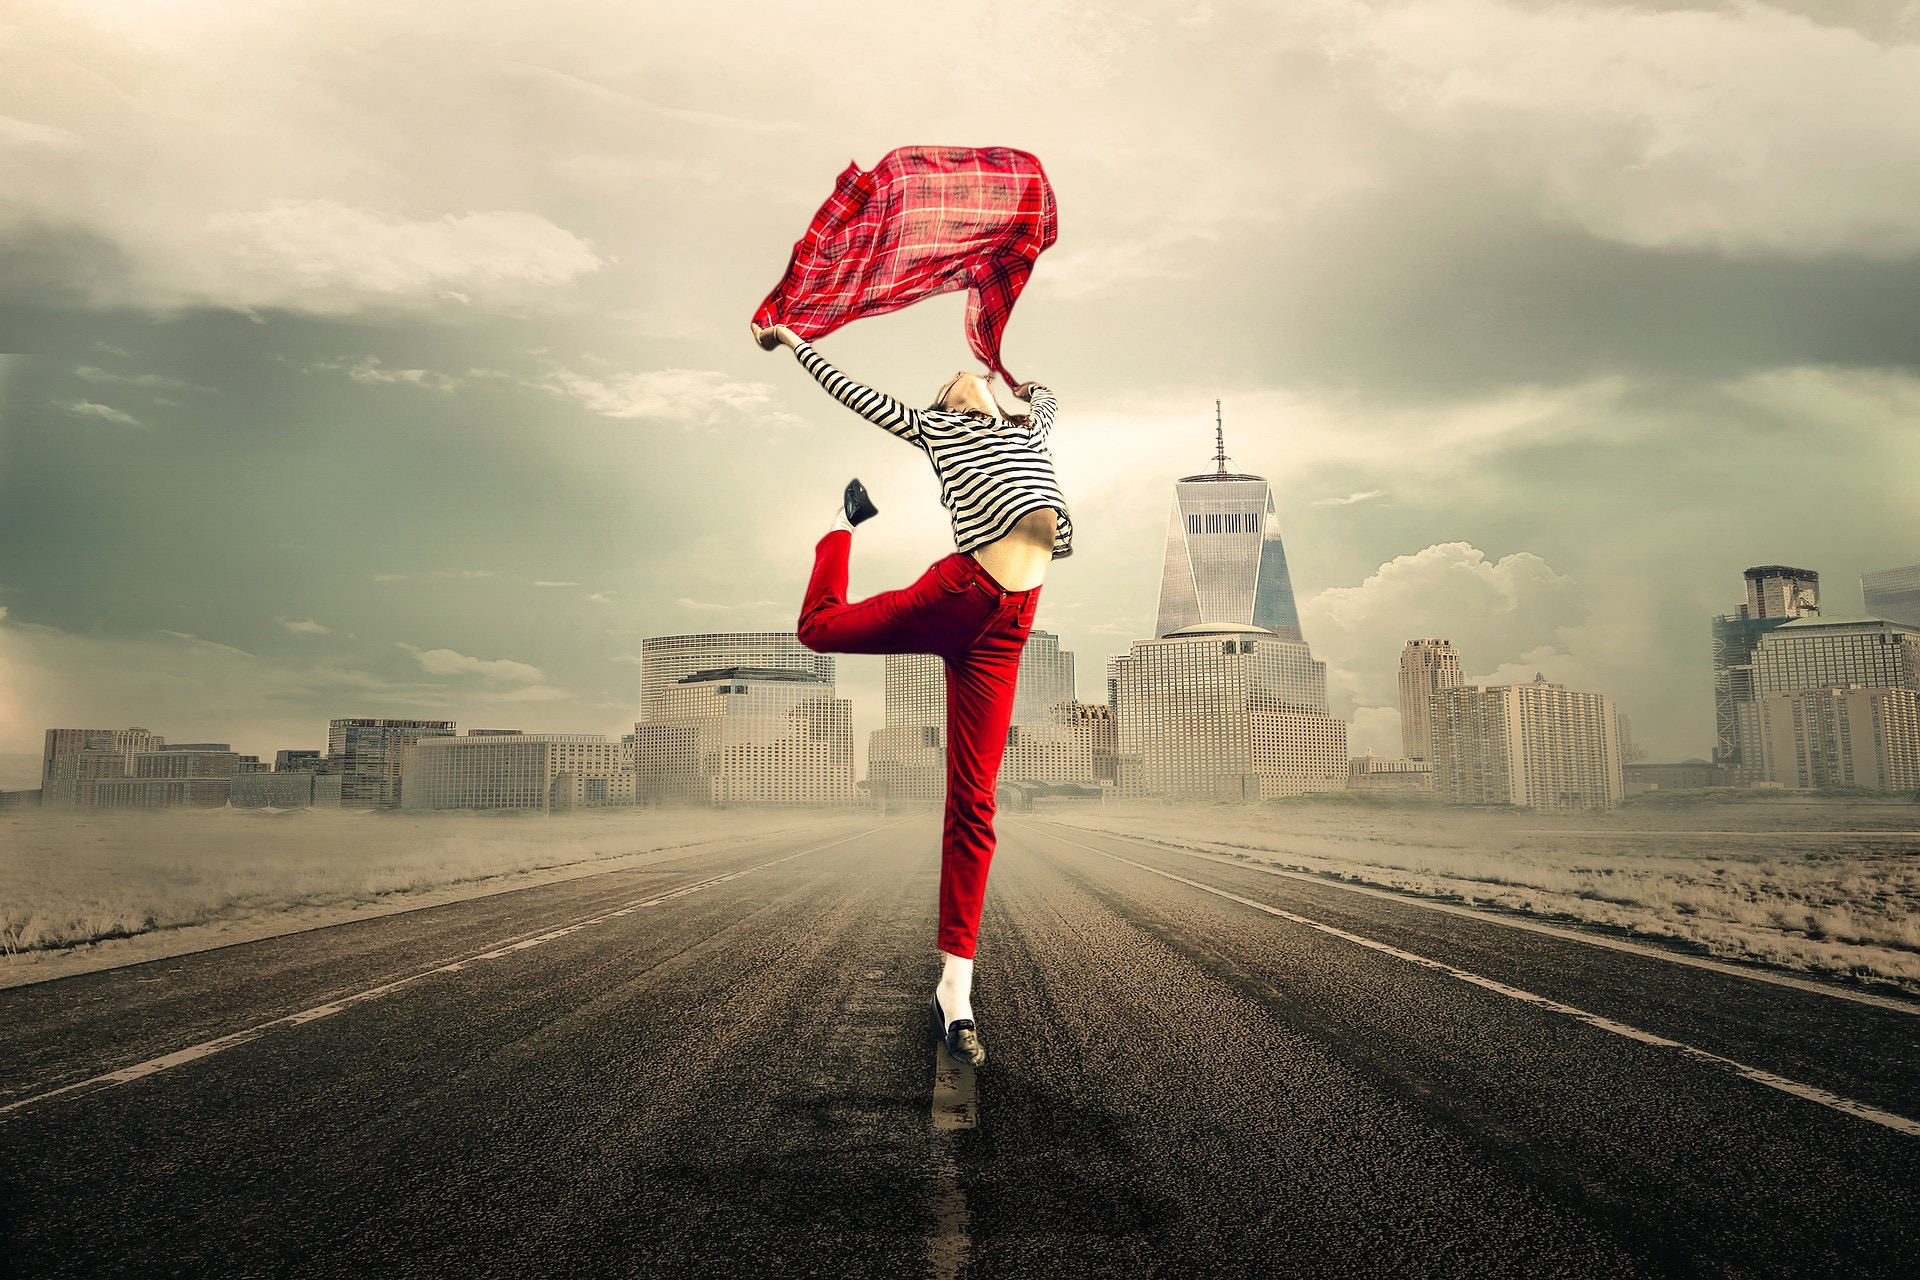 A young woman dancing outside a large city on the highway